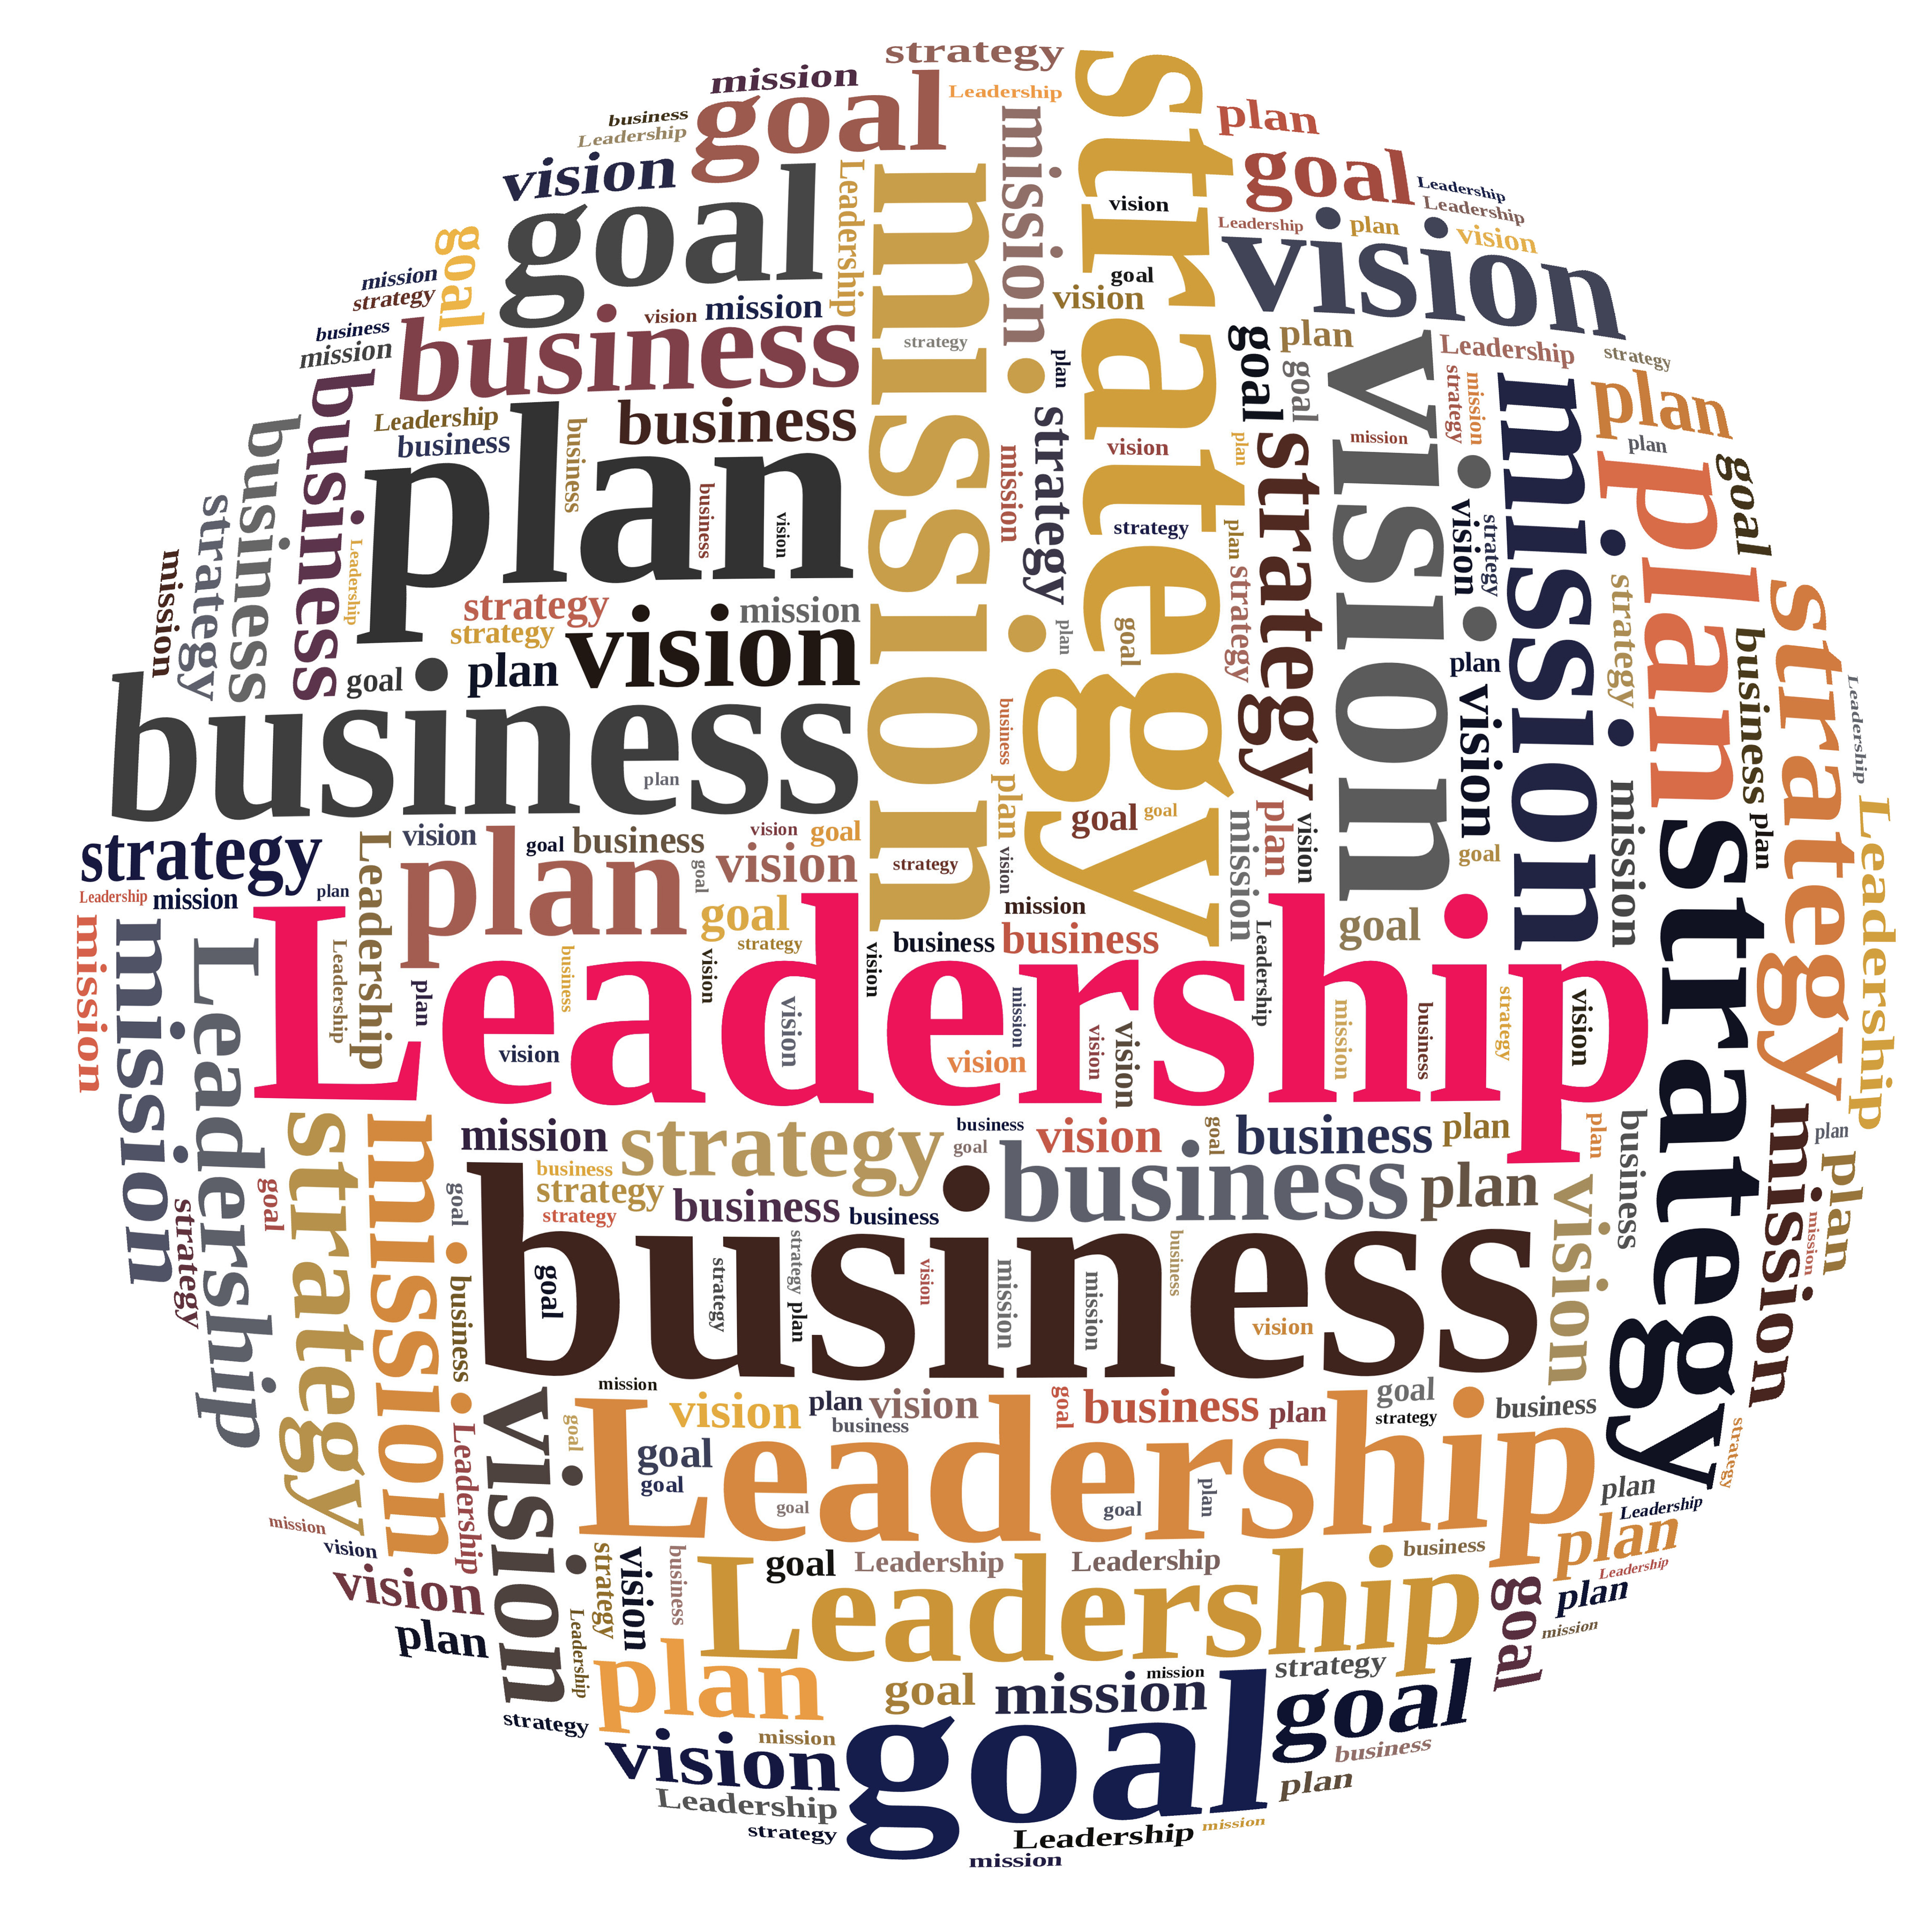 Transactional vs.  Transformational Leadership: Is it really either/or?